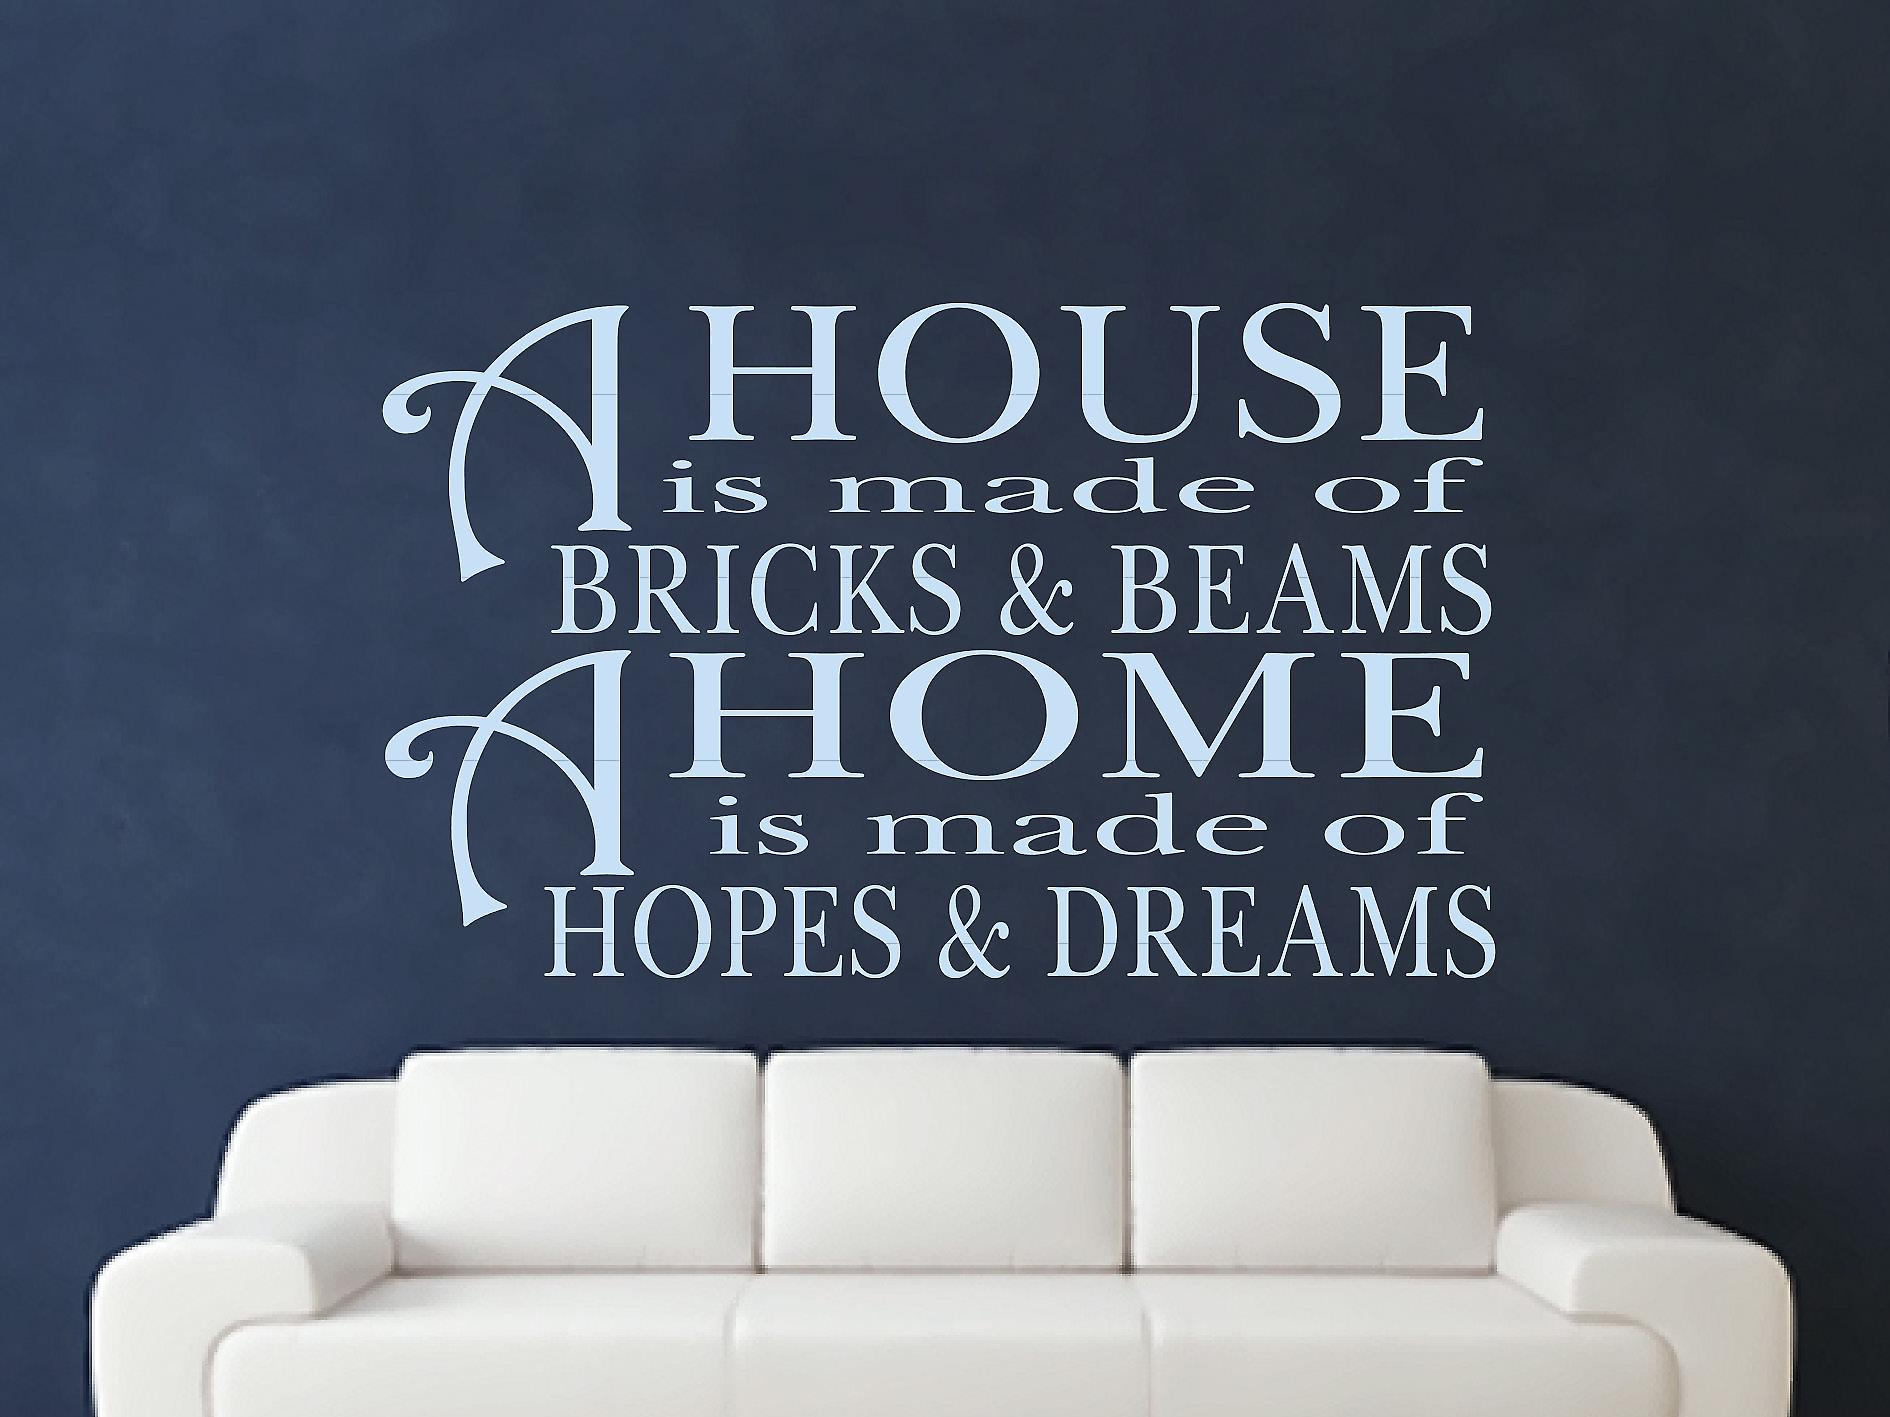 A House Is Made Of Bricks And Beams v2 Wall Art Sticker - Pastel Blue